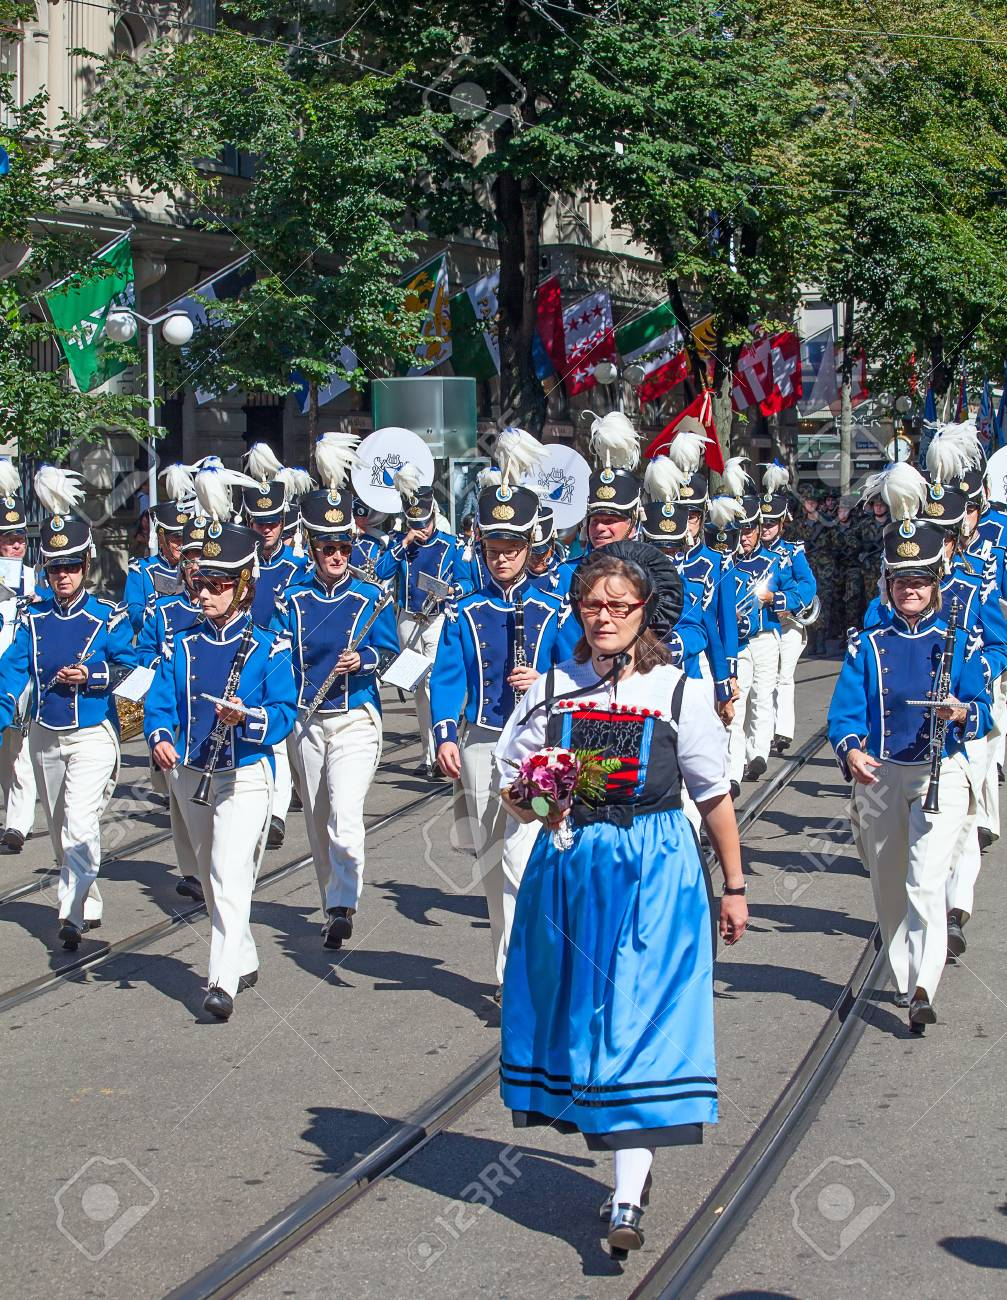 ZURICH - AUGUST 1: Zurich city orchestra in traditional costumes openning the Swiss National Day parade on August 1, 2009 in Zurich, Switzerland. Stock Photo - 15131964